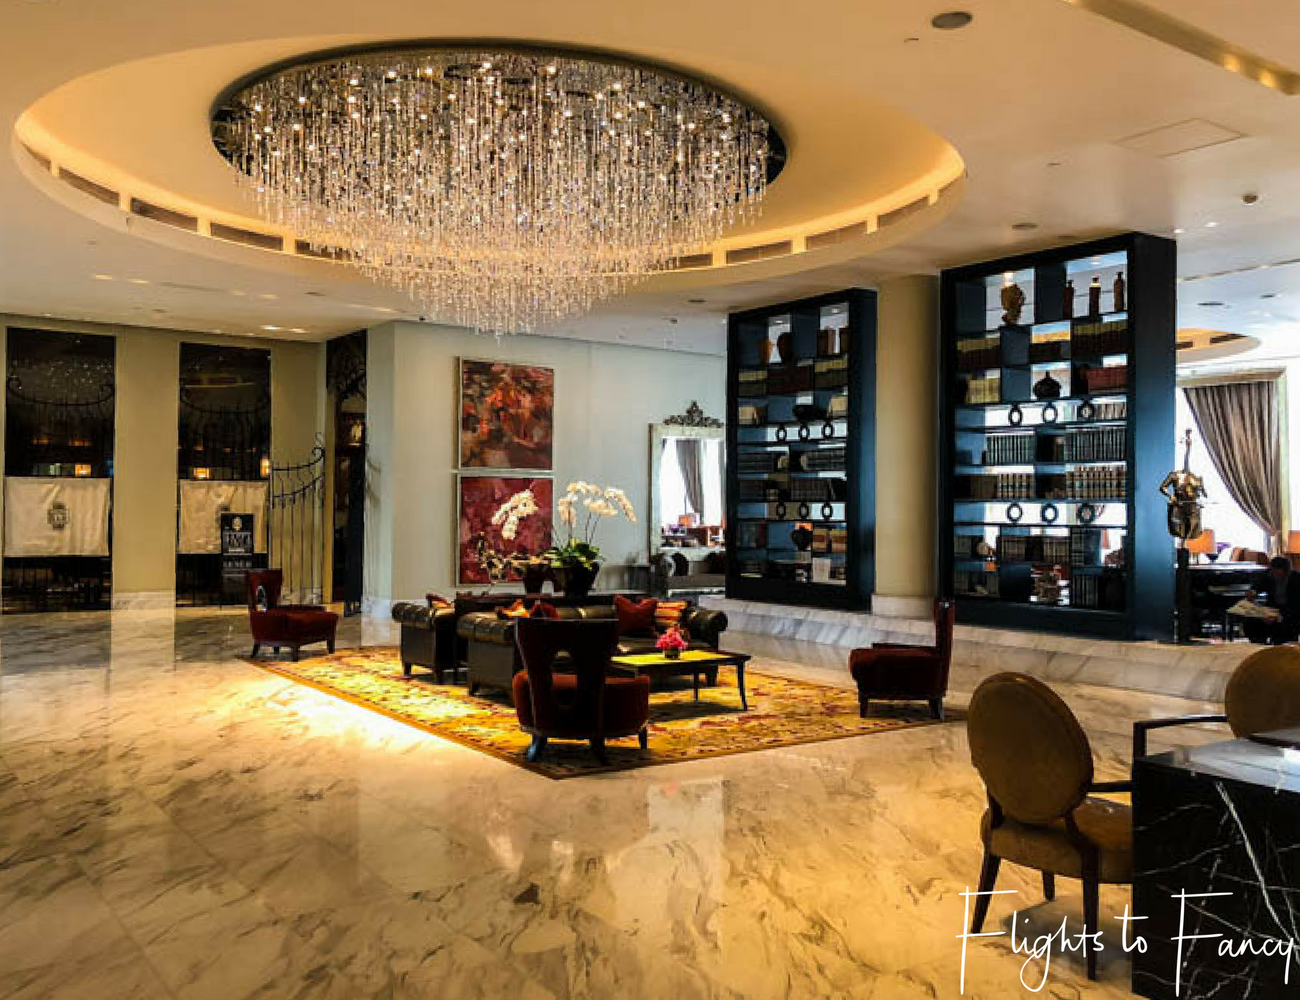 Flights To Fancy at Raffles Makati - The lobby of one of the finest luxury hotels in Manila